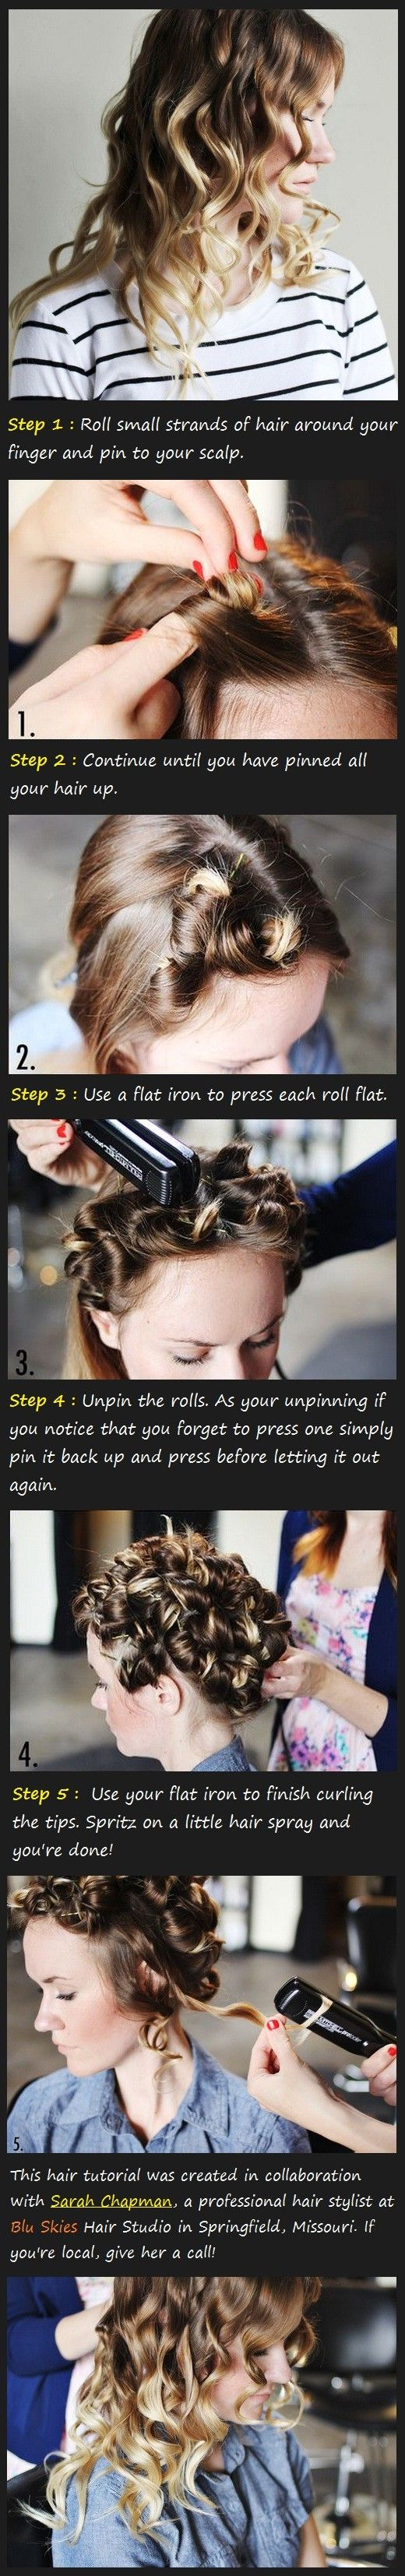 best Hairstyles hair etc images on Pinterest  Hairstyle ideas